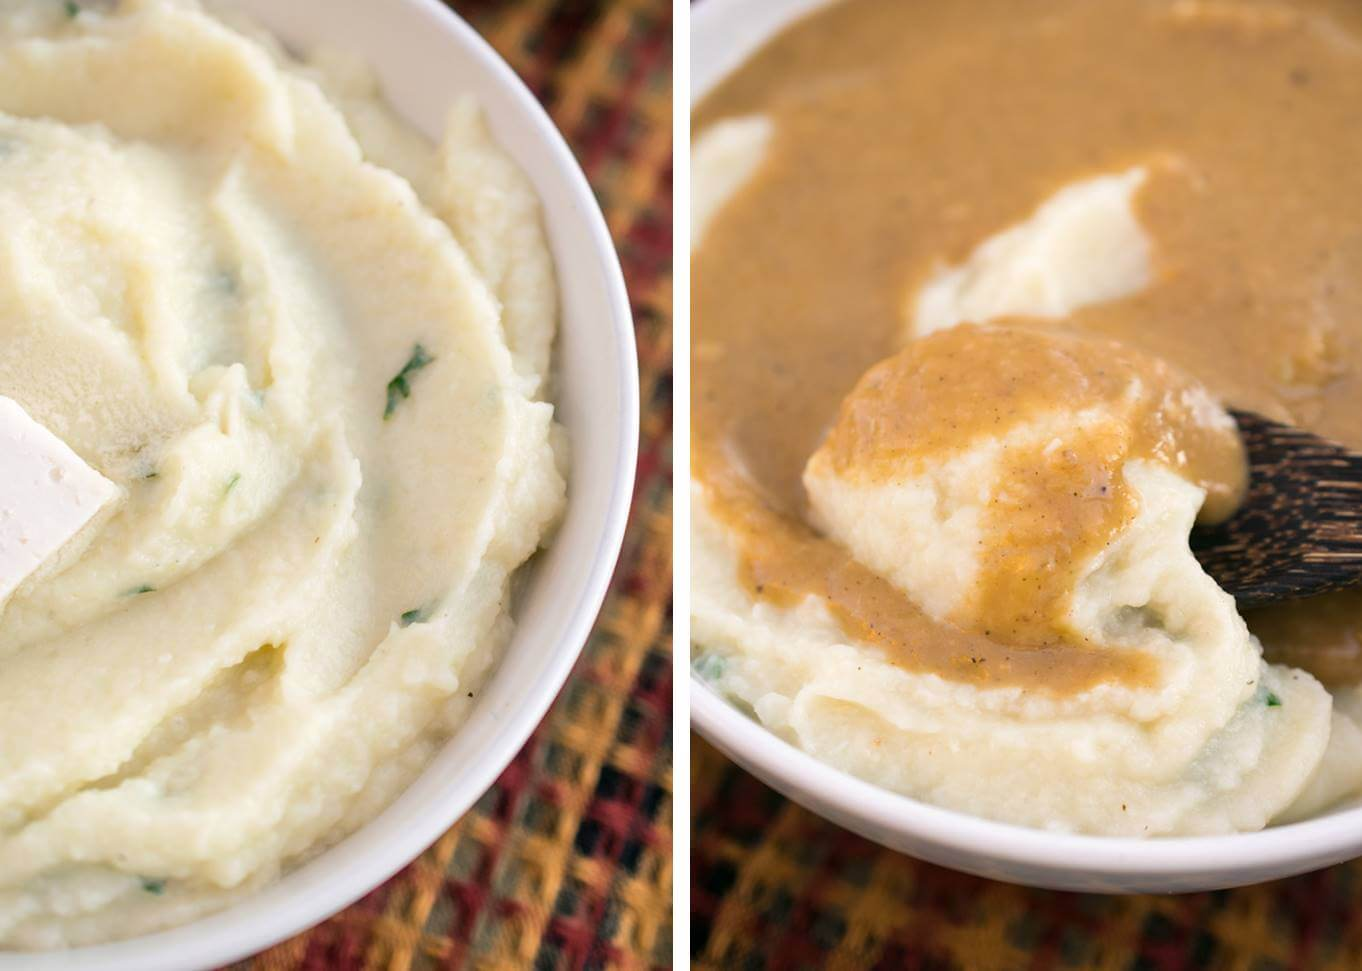 Close-up of cauliflower mashed potatoes with and without gravy, showing the creamy and light texture